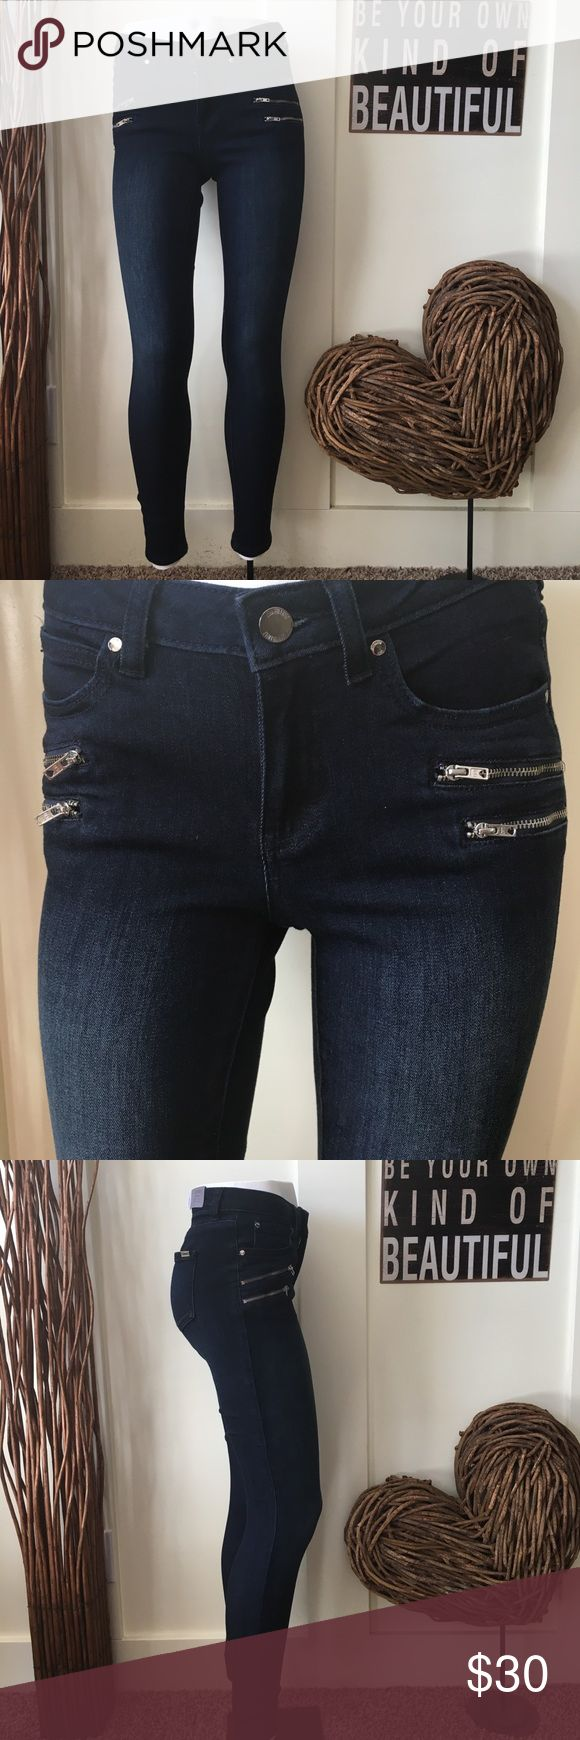 Jennifer Lopez skinny jeans with zippered pockets Jennifer Lopez skinny mid rise jeans are slim through the hip and thigh , skinny leg opening with stretch for comfort.  Silver tone zippered pockets on the front make these jeans a must have. Jennifer Lopez Jeans Skinny